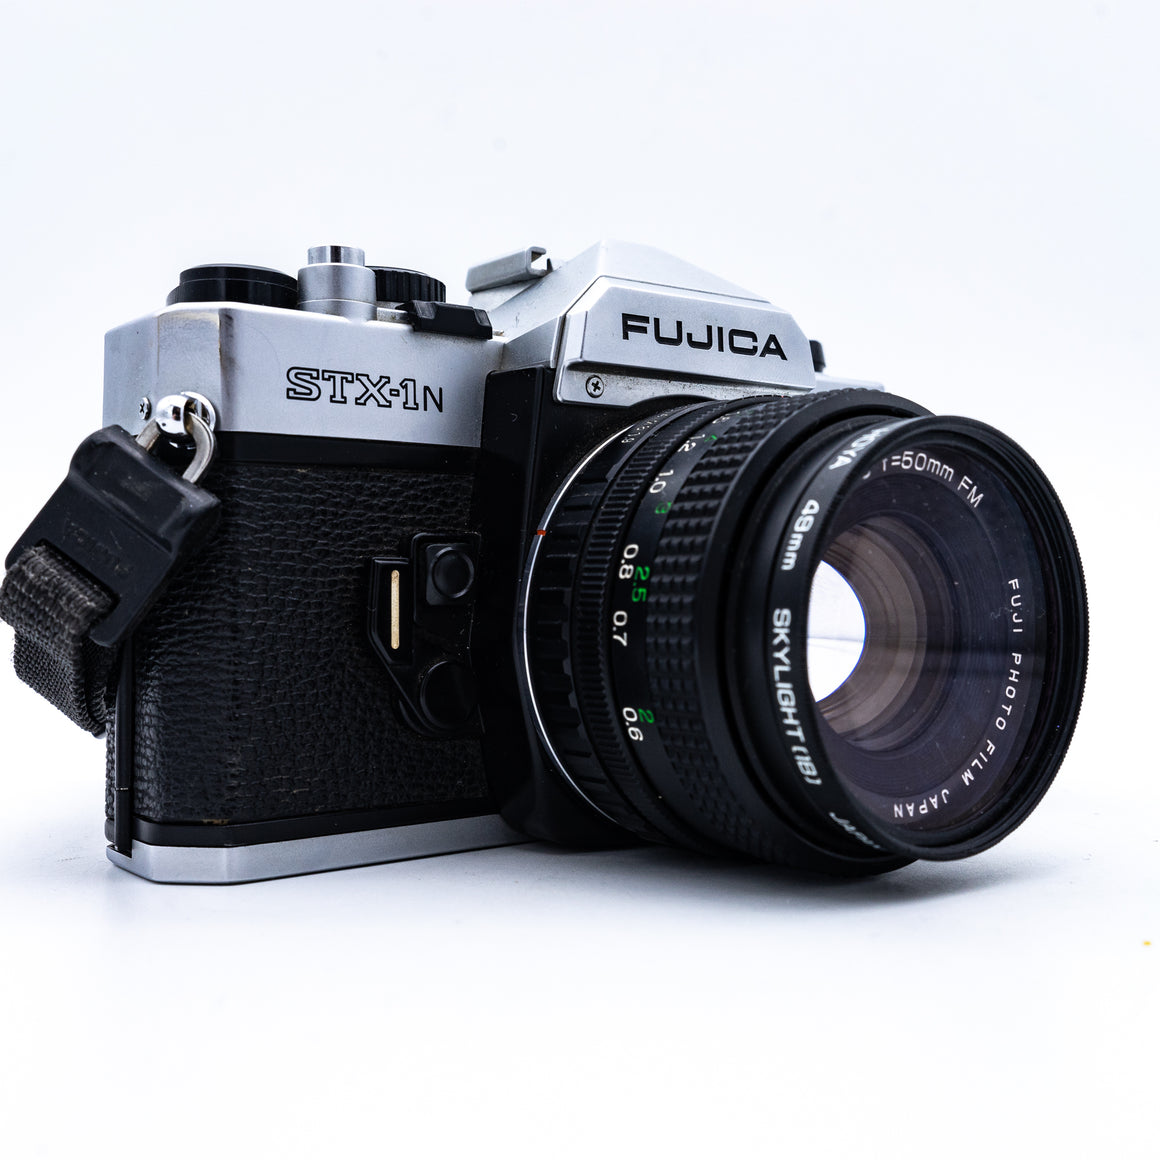 Fuji STX 1-N 35mm SLR Camera with 50mm F1.9